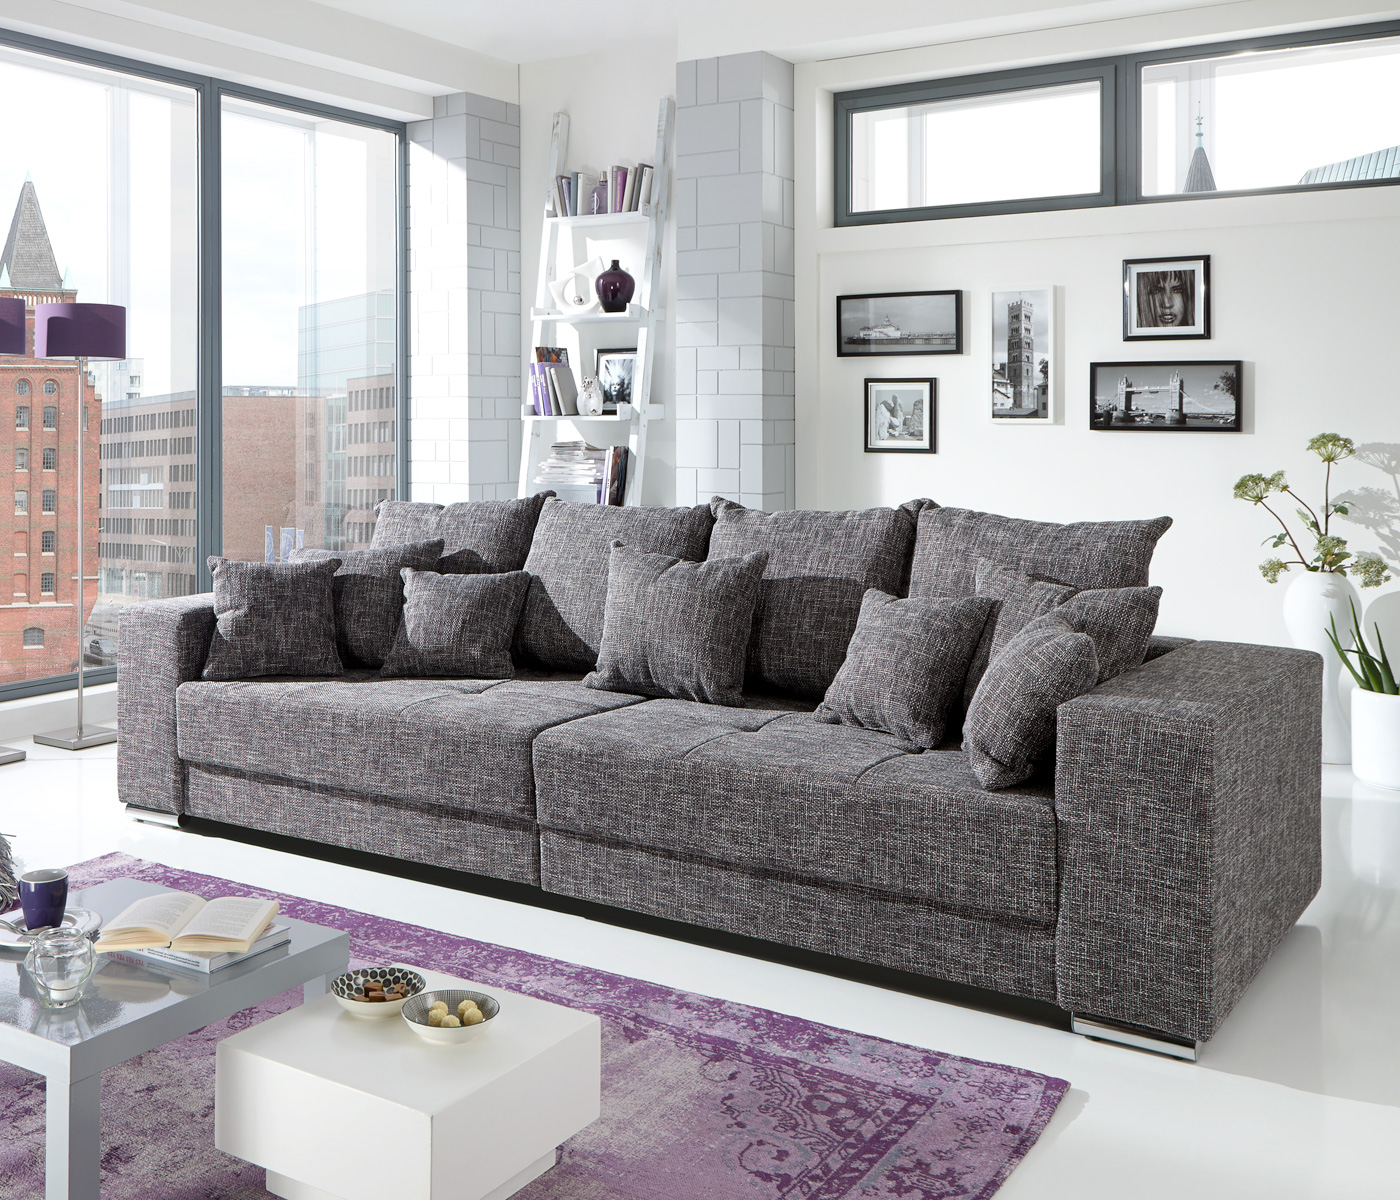 bigsofa adria big sofa couch in webstoff graubraun mit vielen kissen eur 449 95 picclick de. Black Bedroom Furniture Sets. Home Design Ideas